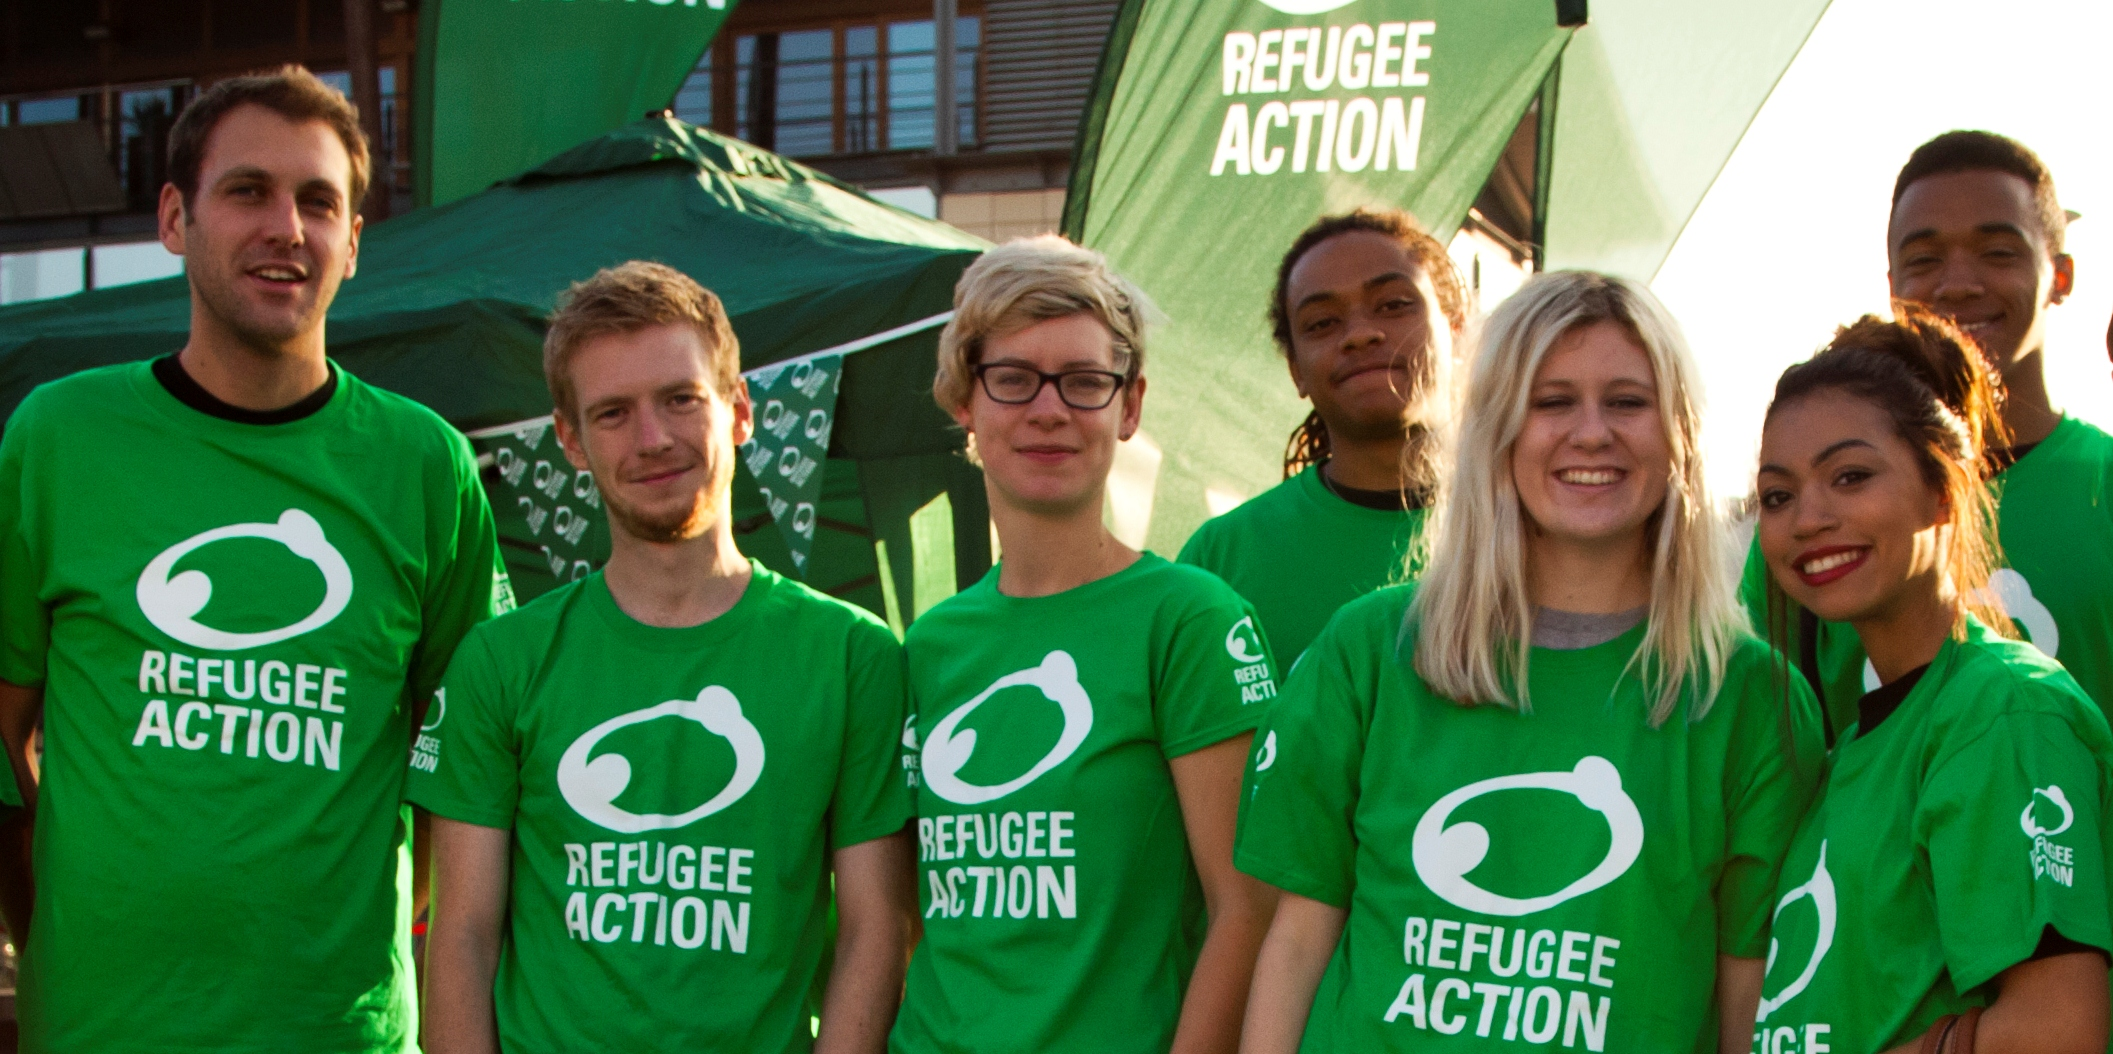 a group of smiling young people wearing a green refugee action t-shirt in the afternoon